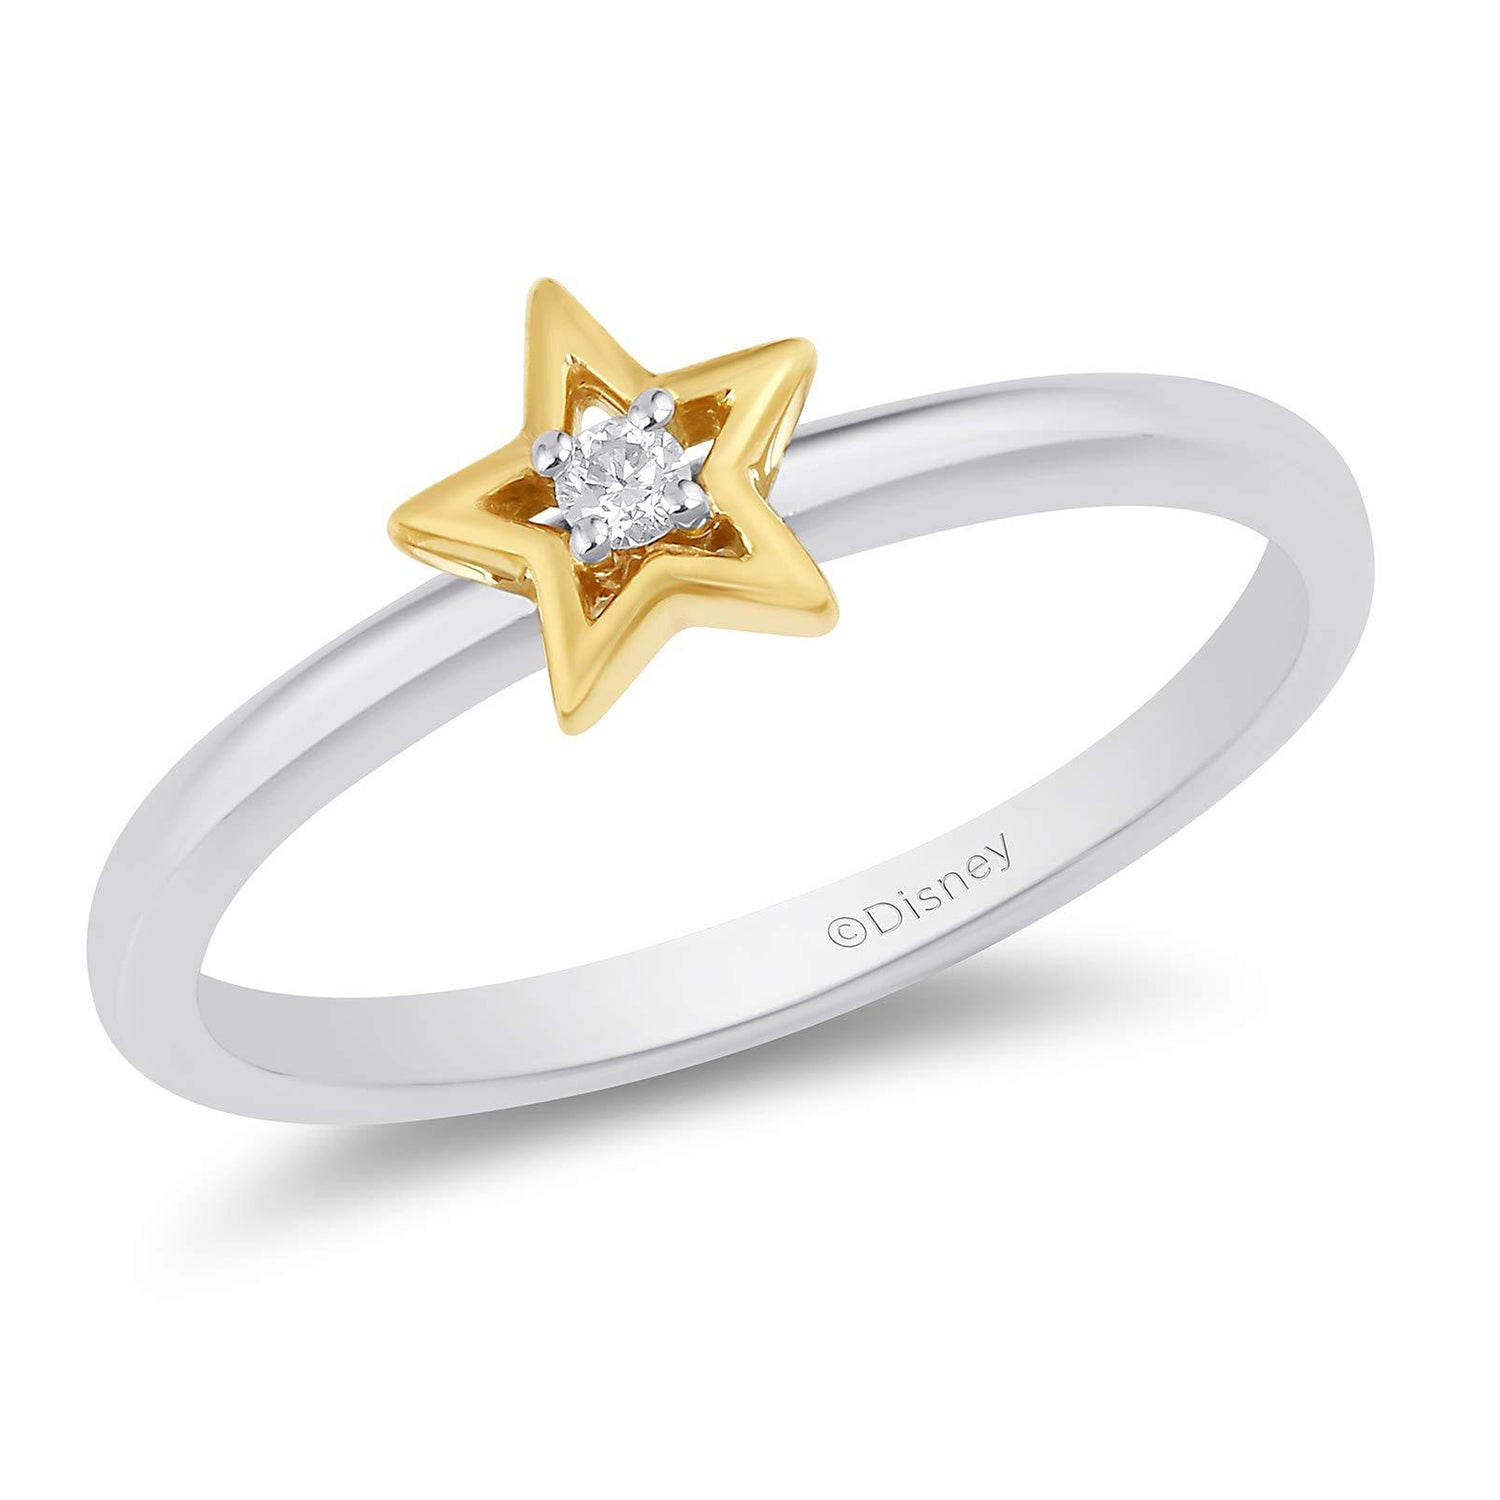 enchanted_disney-tinker-bell_fashion_ring-white_and_yellow_gold_1